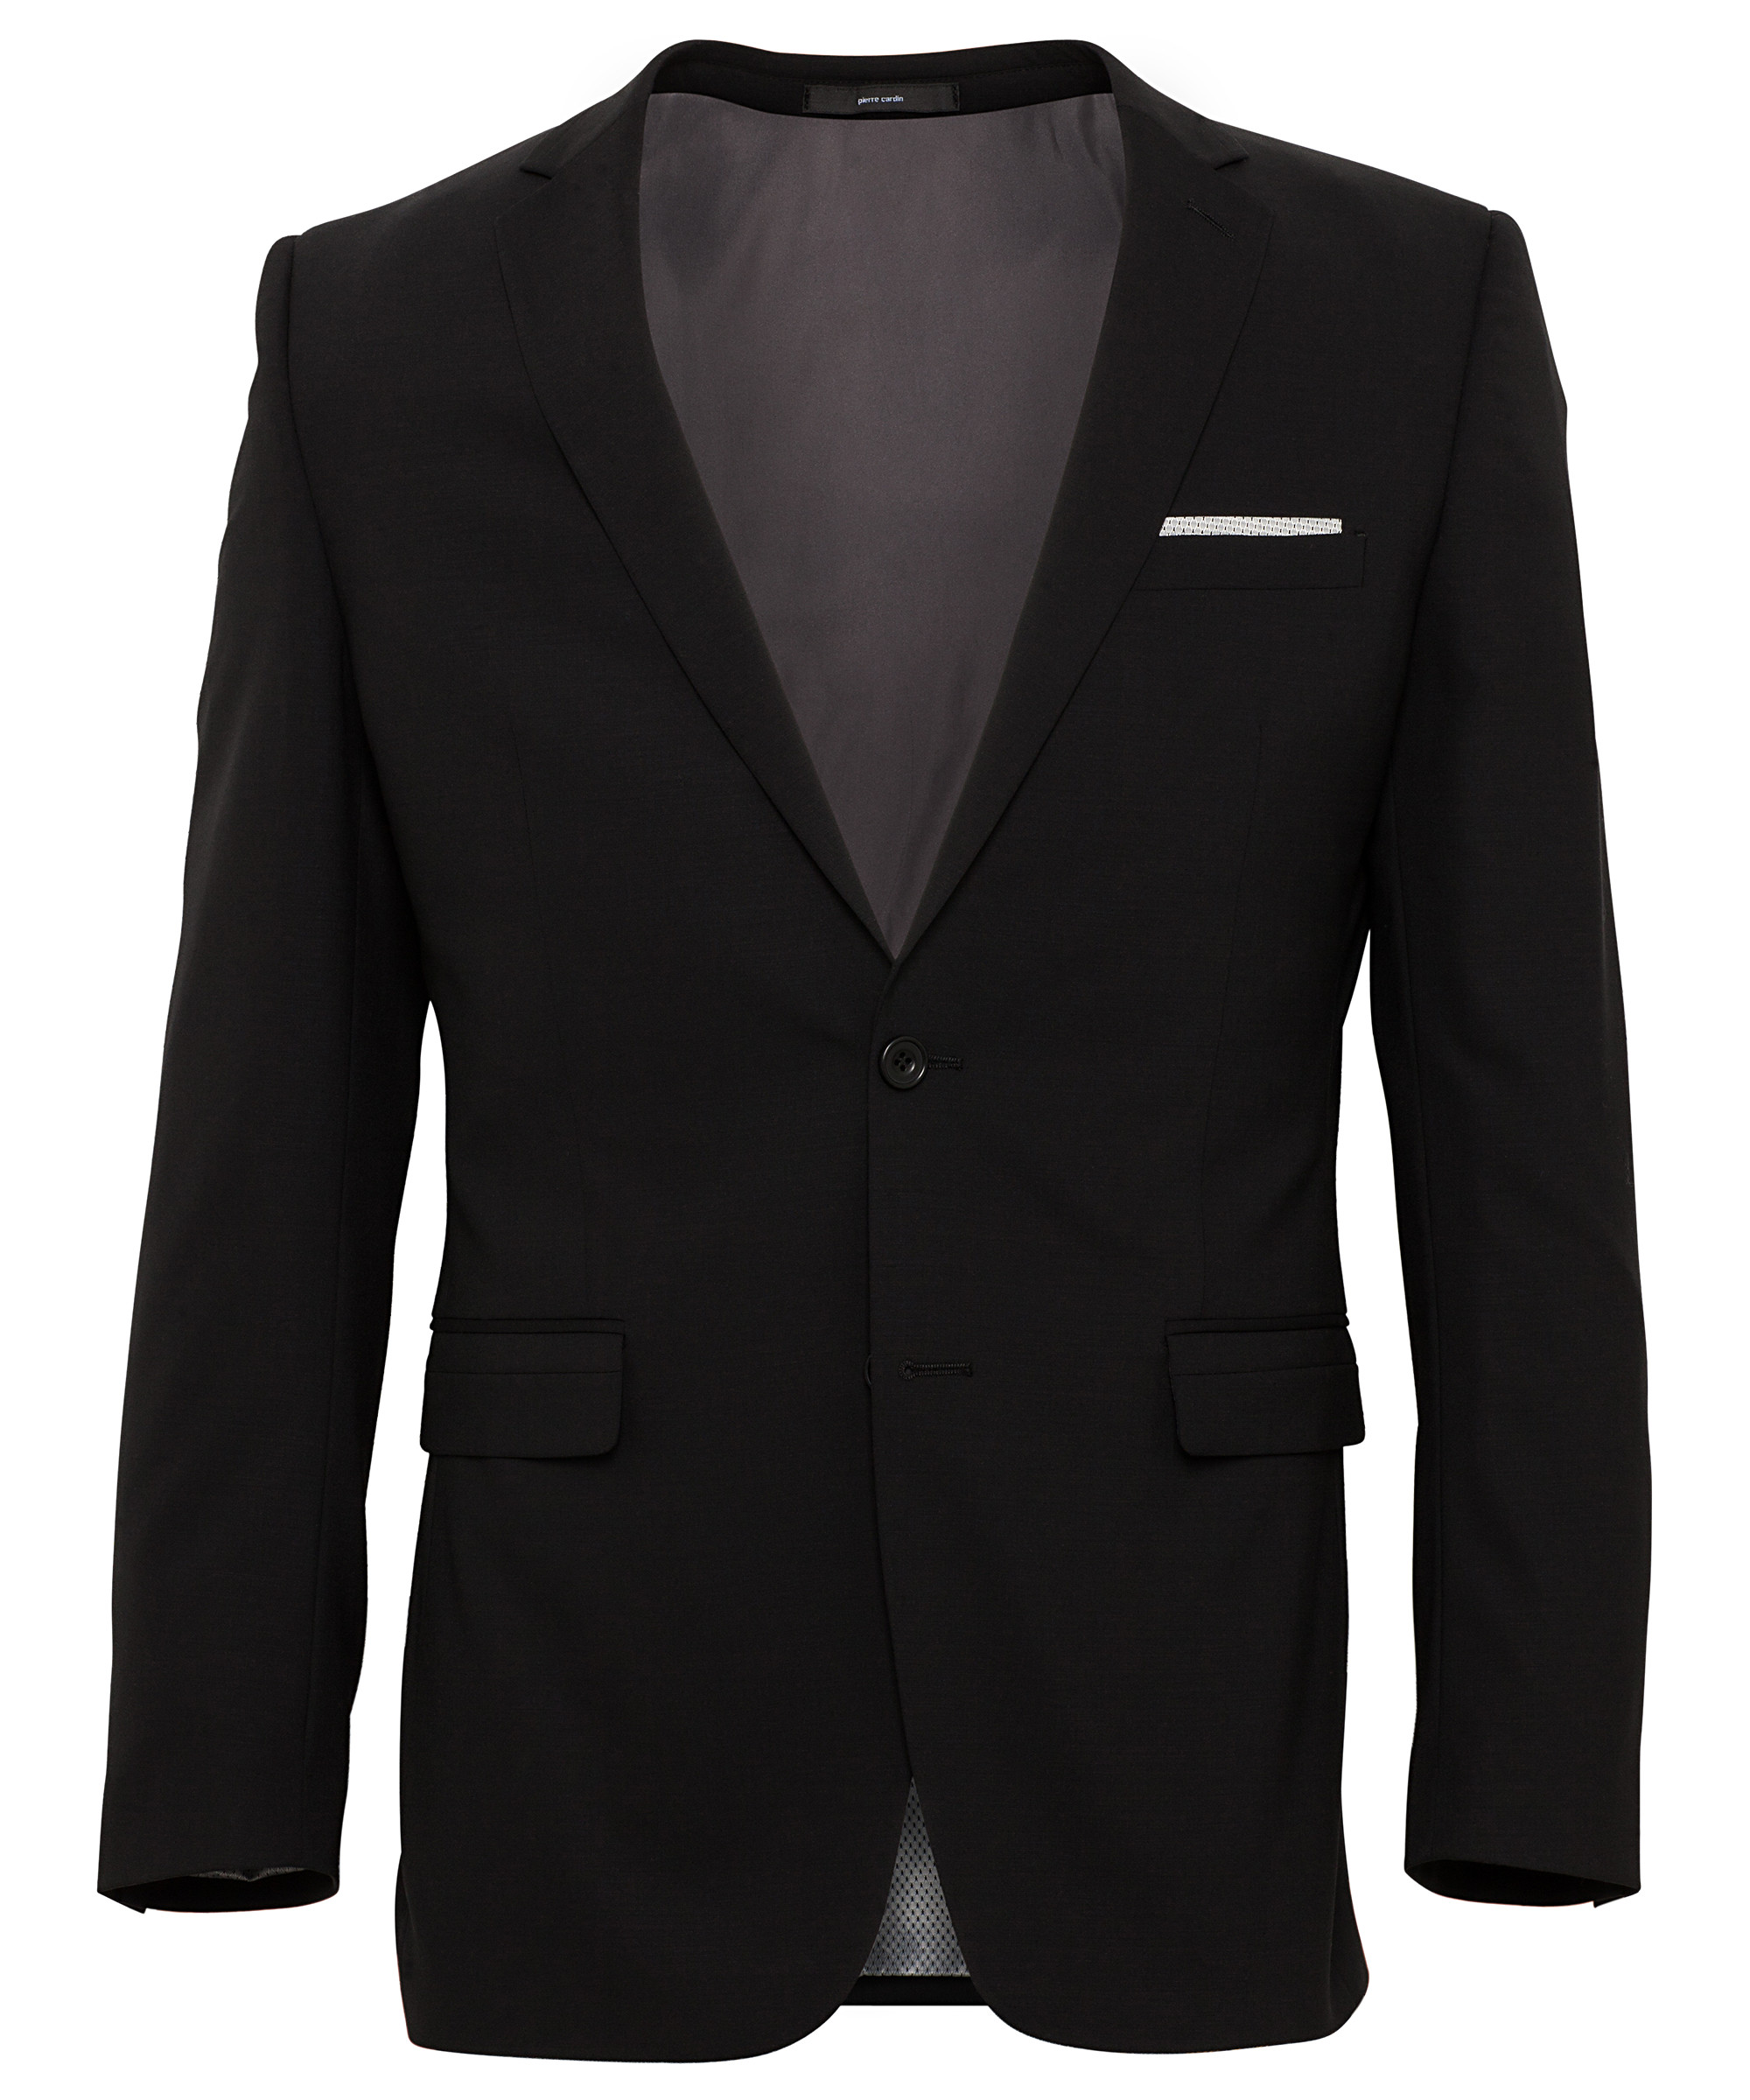 Black Suit Jacket - JacketIn